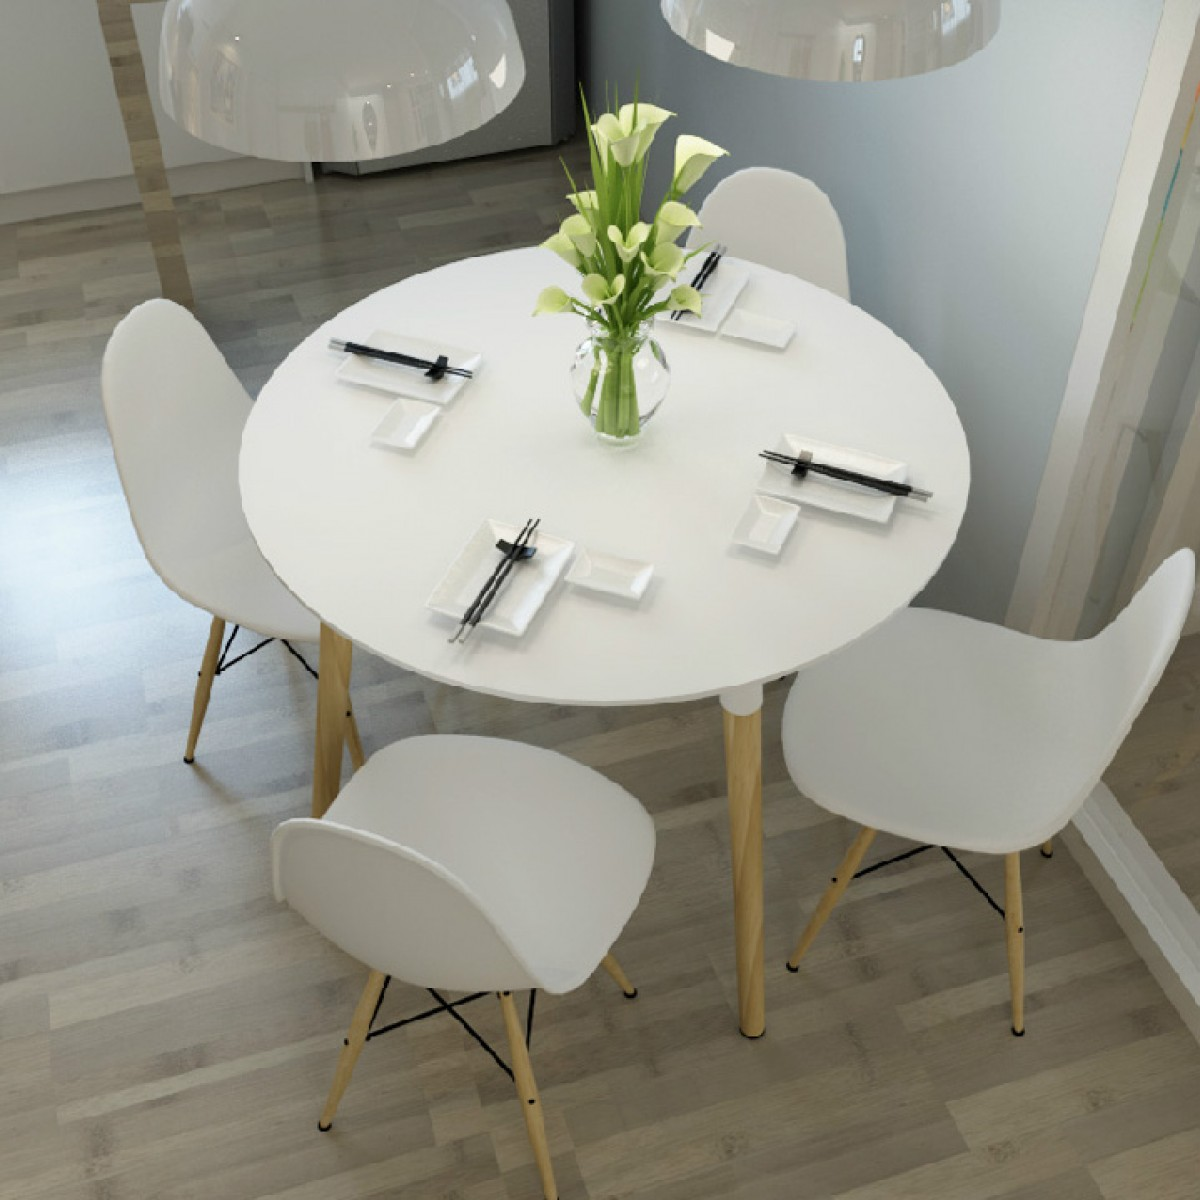 accent chairs under 100 2 ikea henriksdal chair covers uk eames style dsw white round dining table